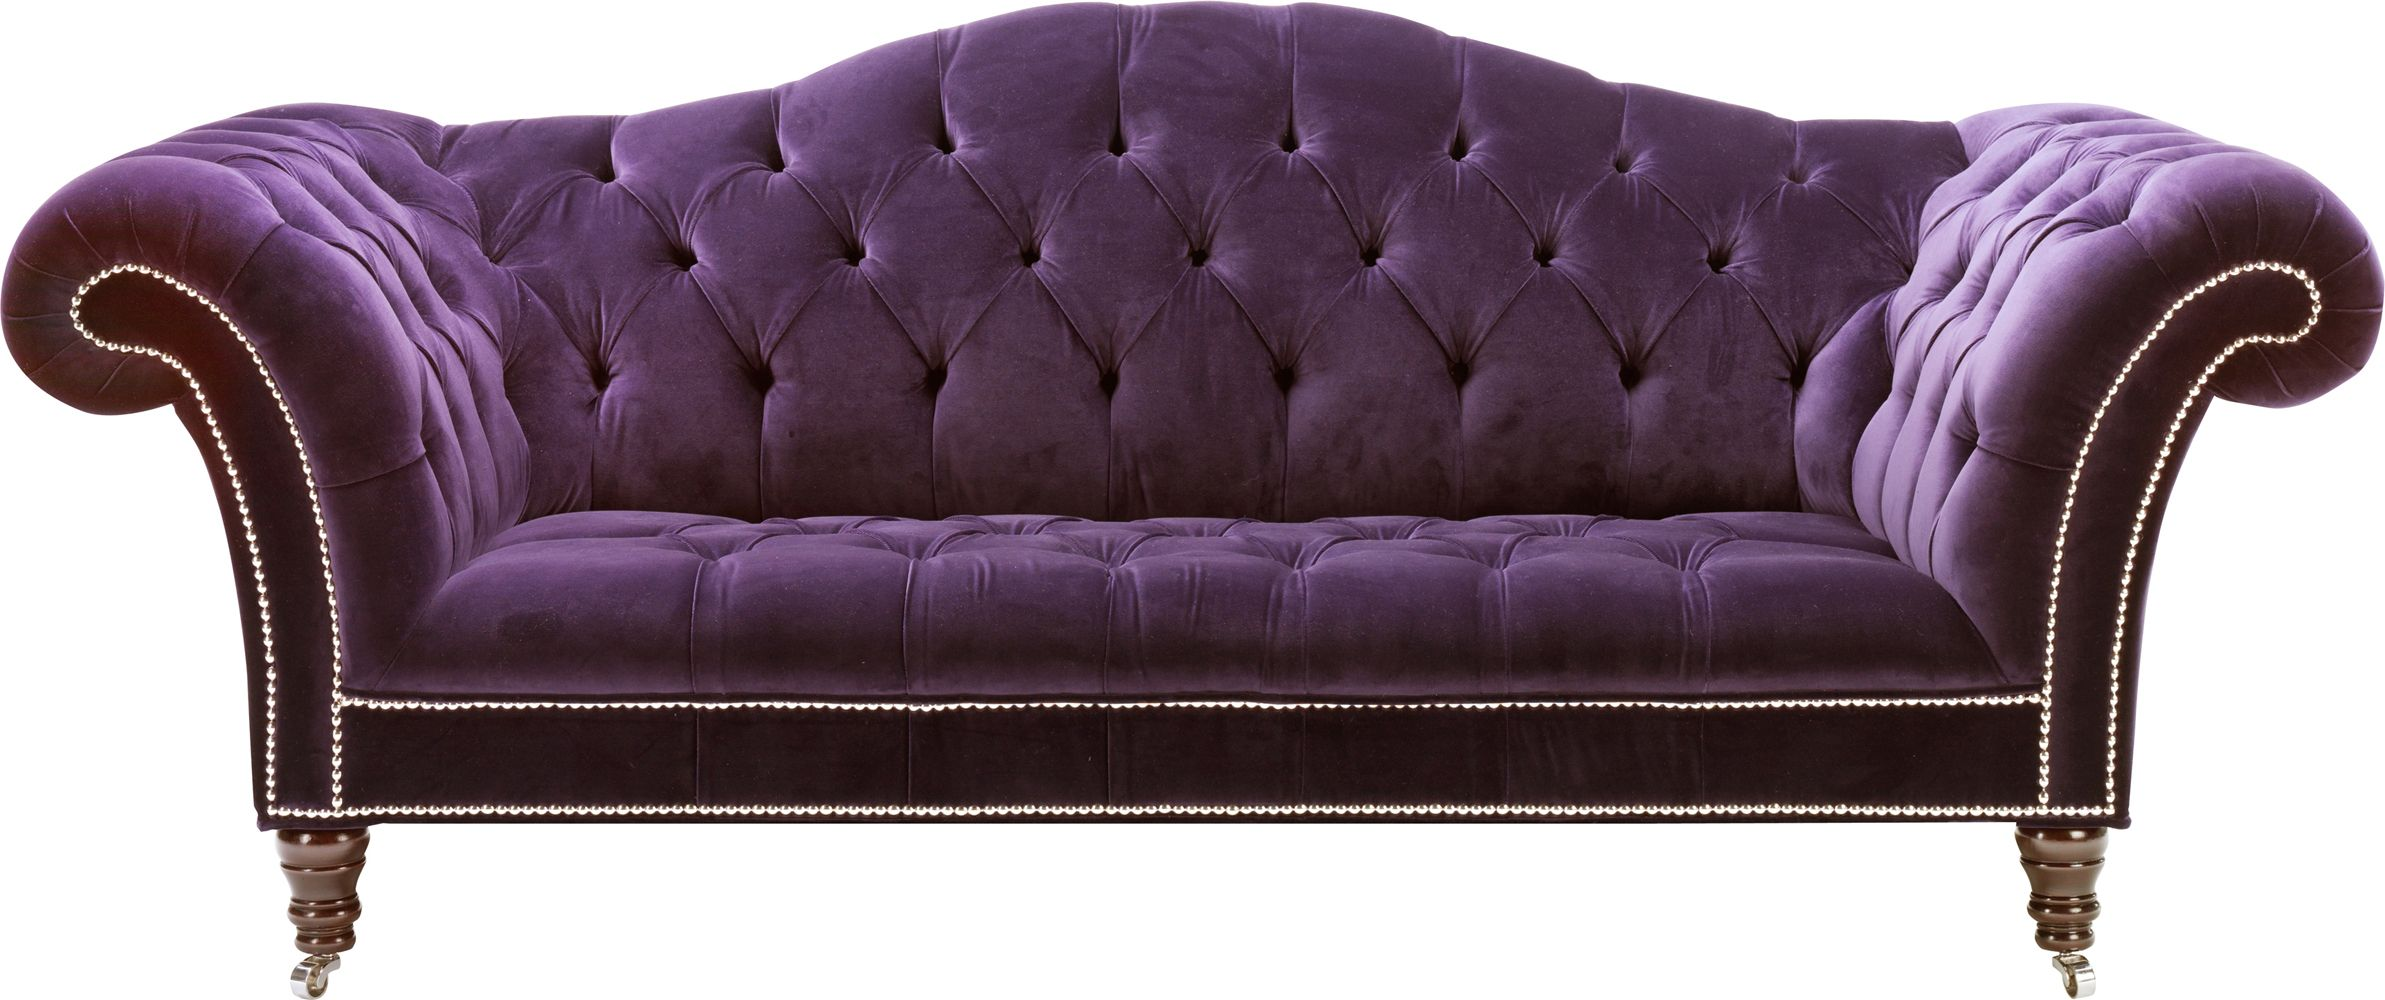 The Grand Victorian Sofa From Design Is Stunning In This Rich Purple Velvet